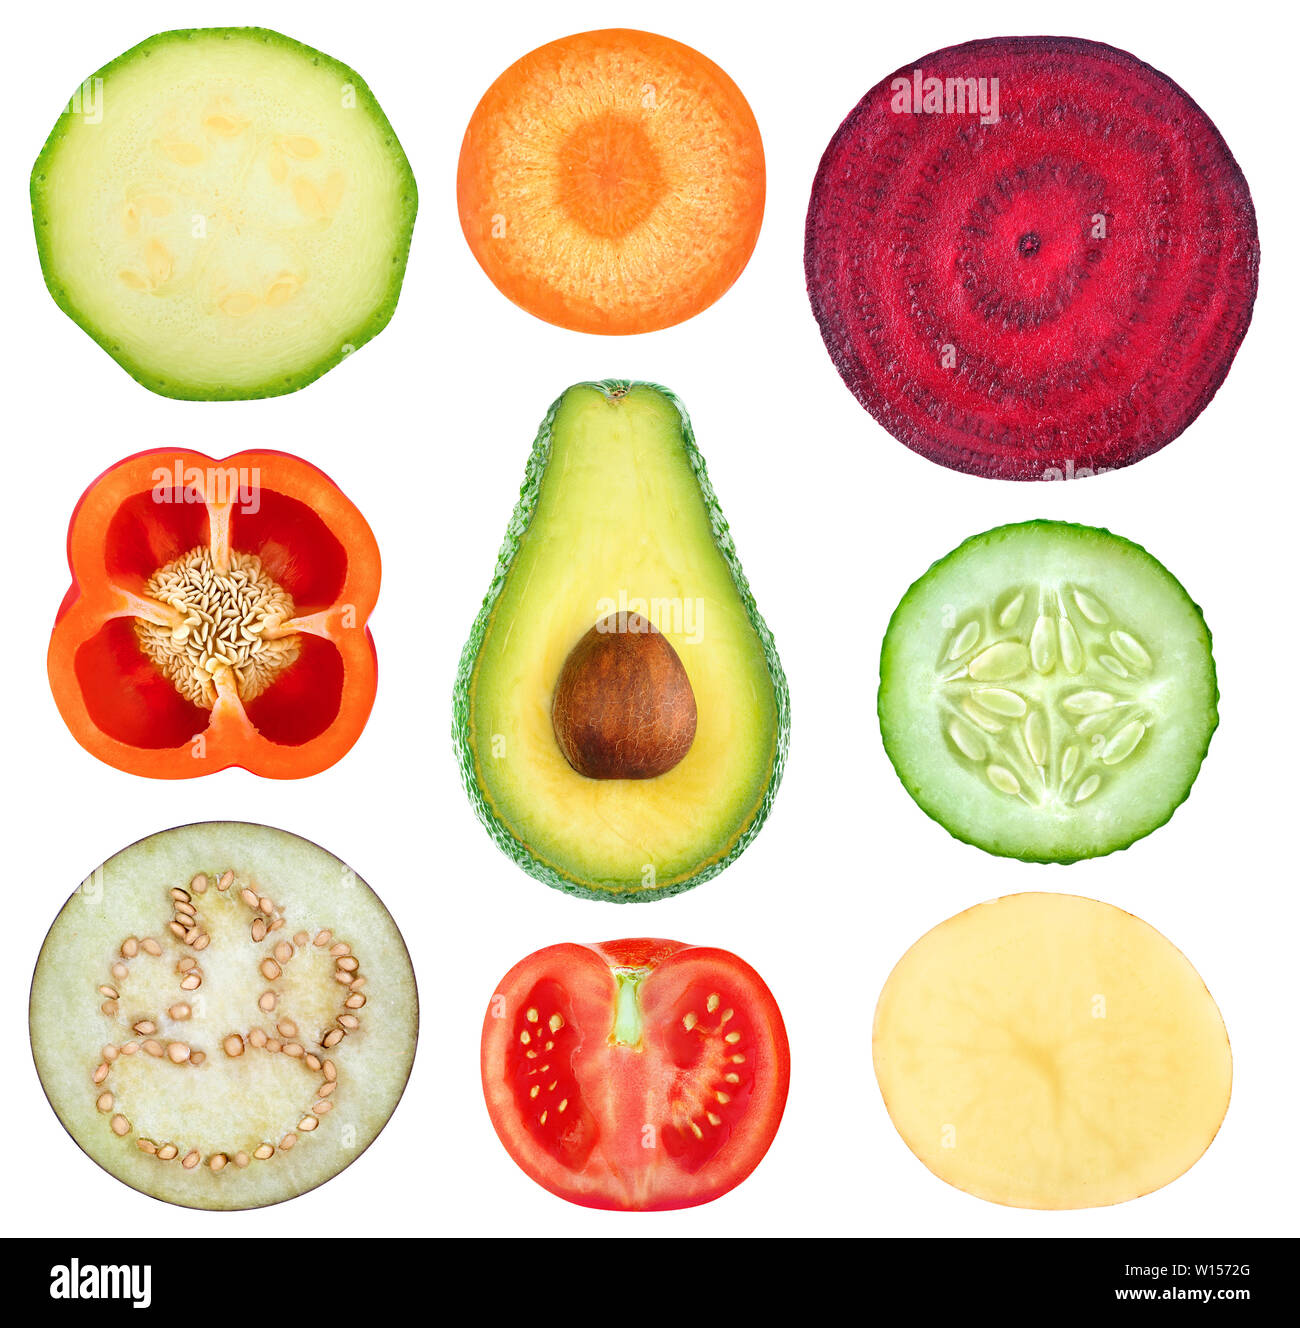 Isolated vegetable slices. Collection of fresh cut vegetables (zucchini, carrot, beetroot, bell pepper, avocado, cucumber, eggplant, tomato, potato) i Stock Photo